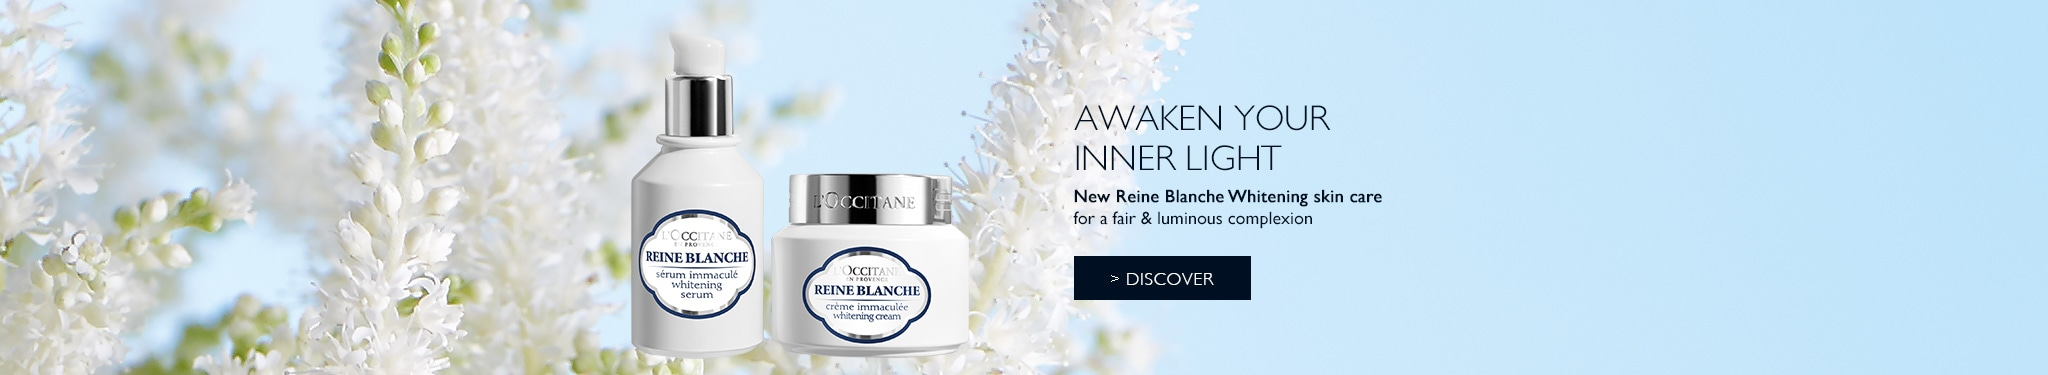 New Reine Blanche Brightening skin care